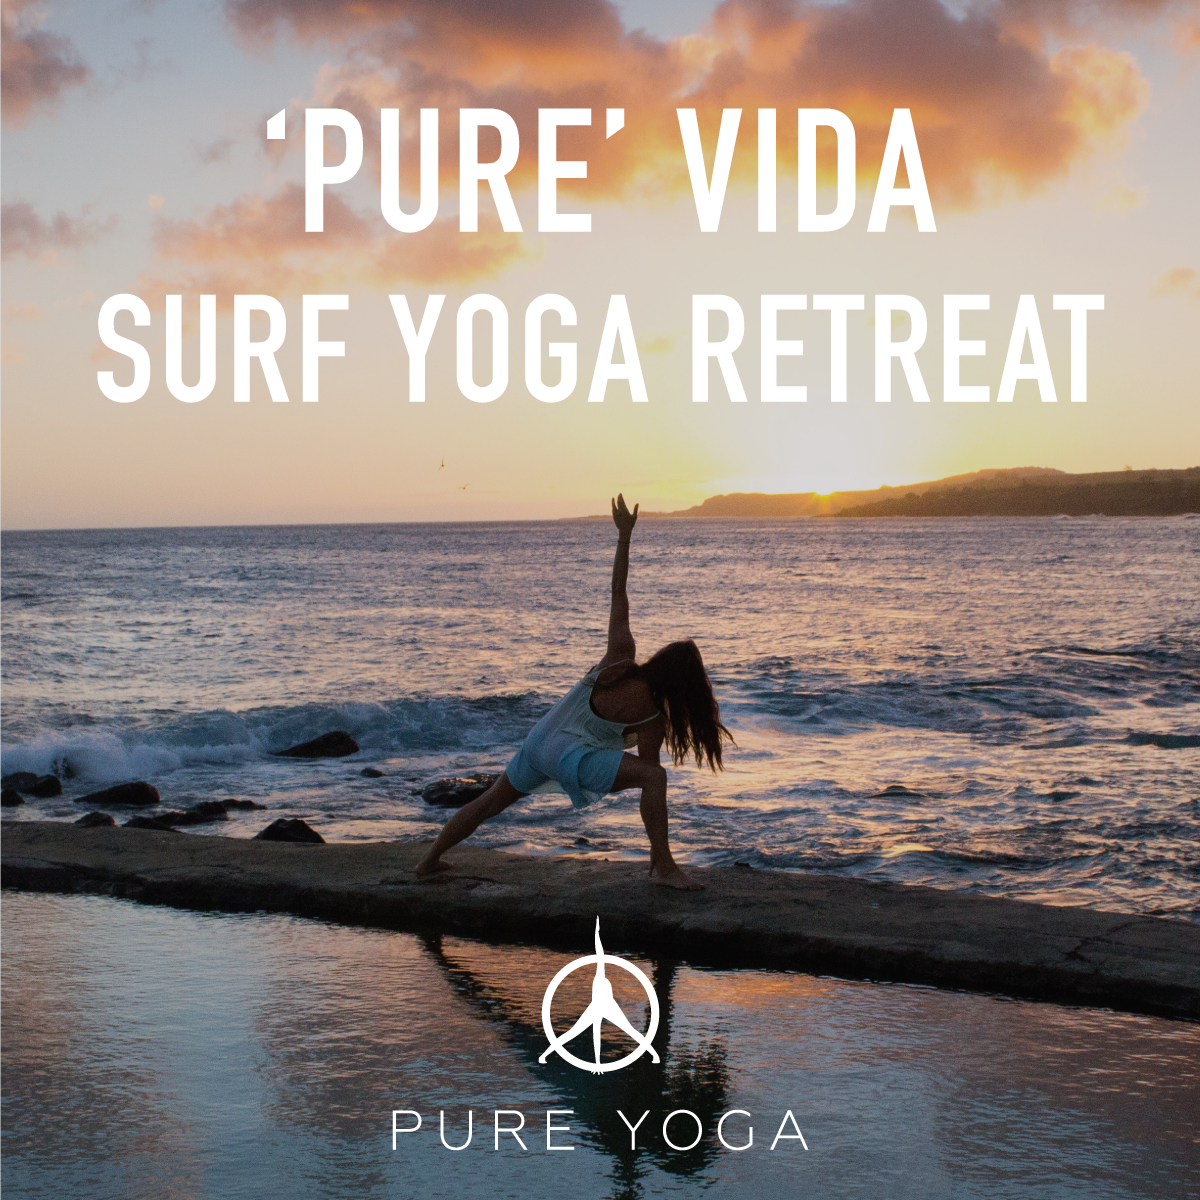 Surf yoga retreat square